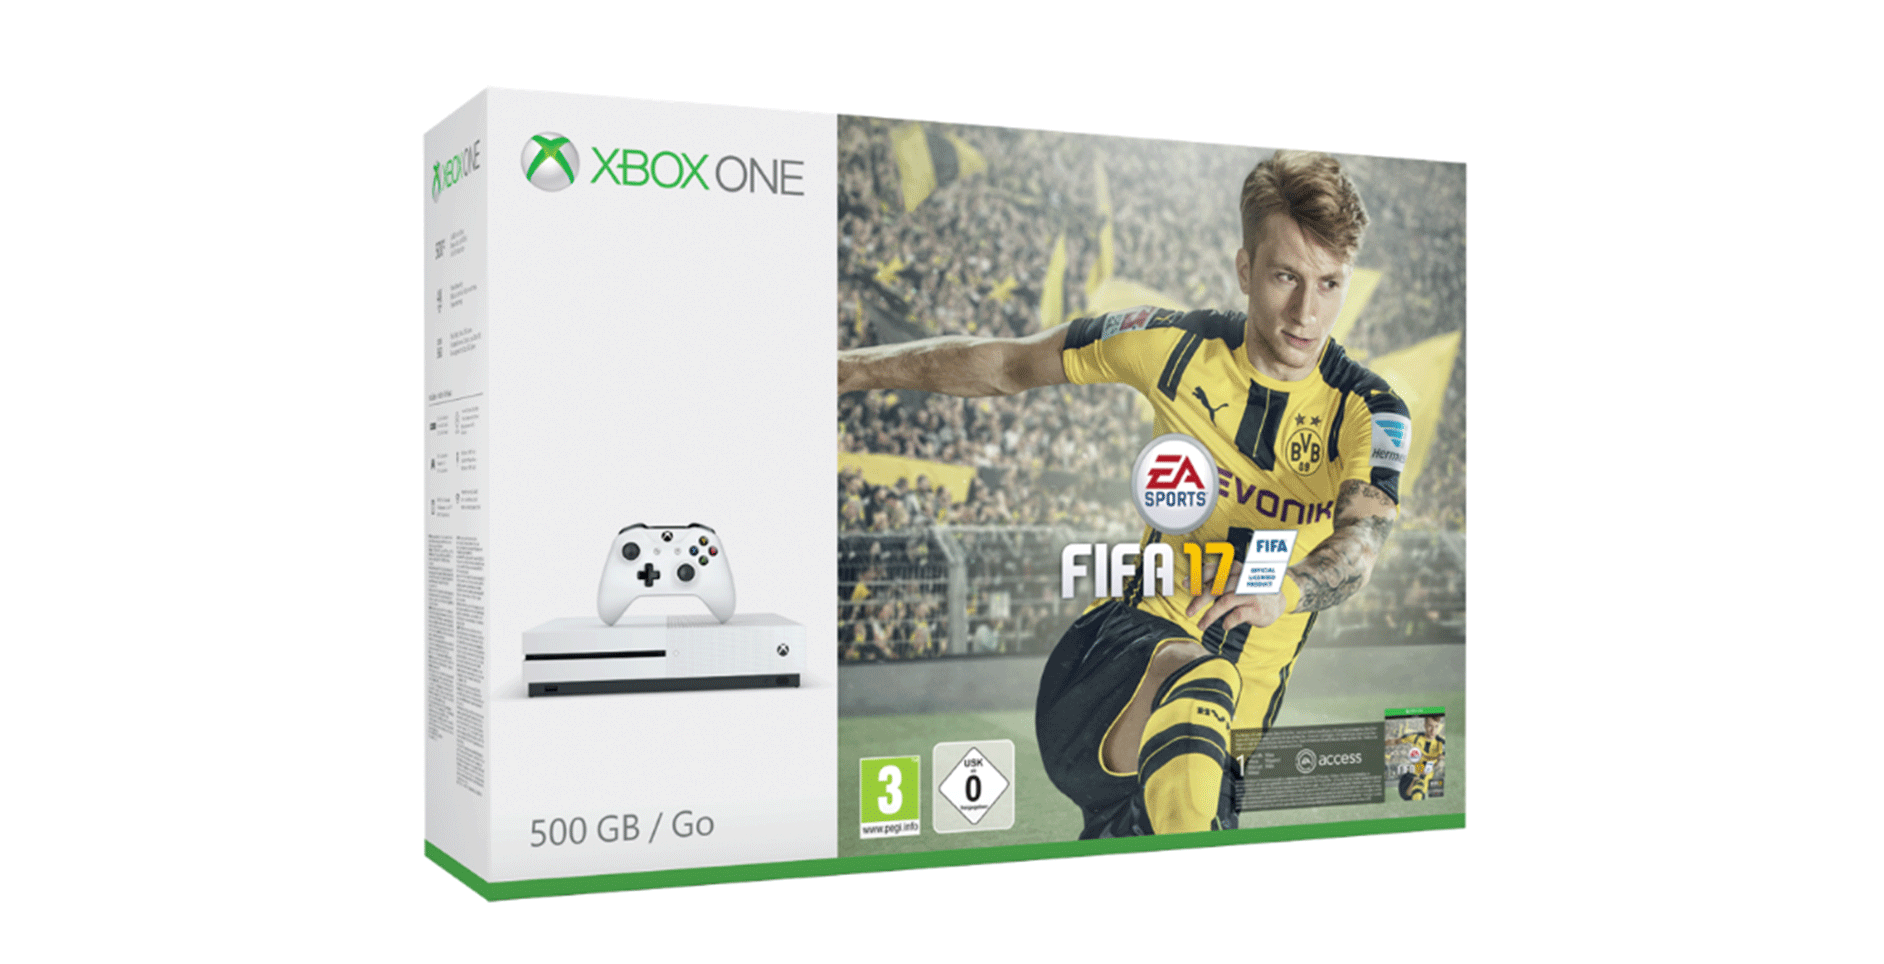 FIFA Xbox One S bundle